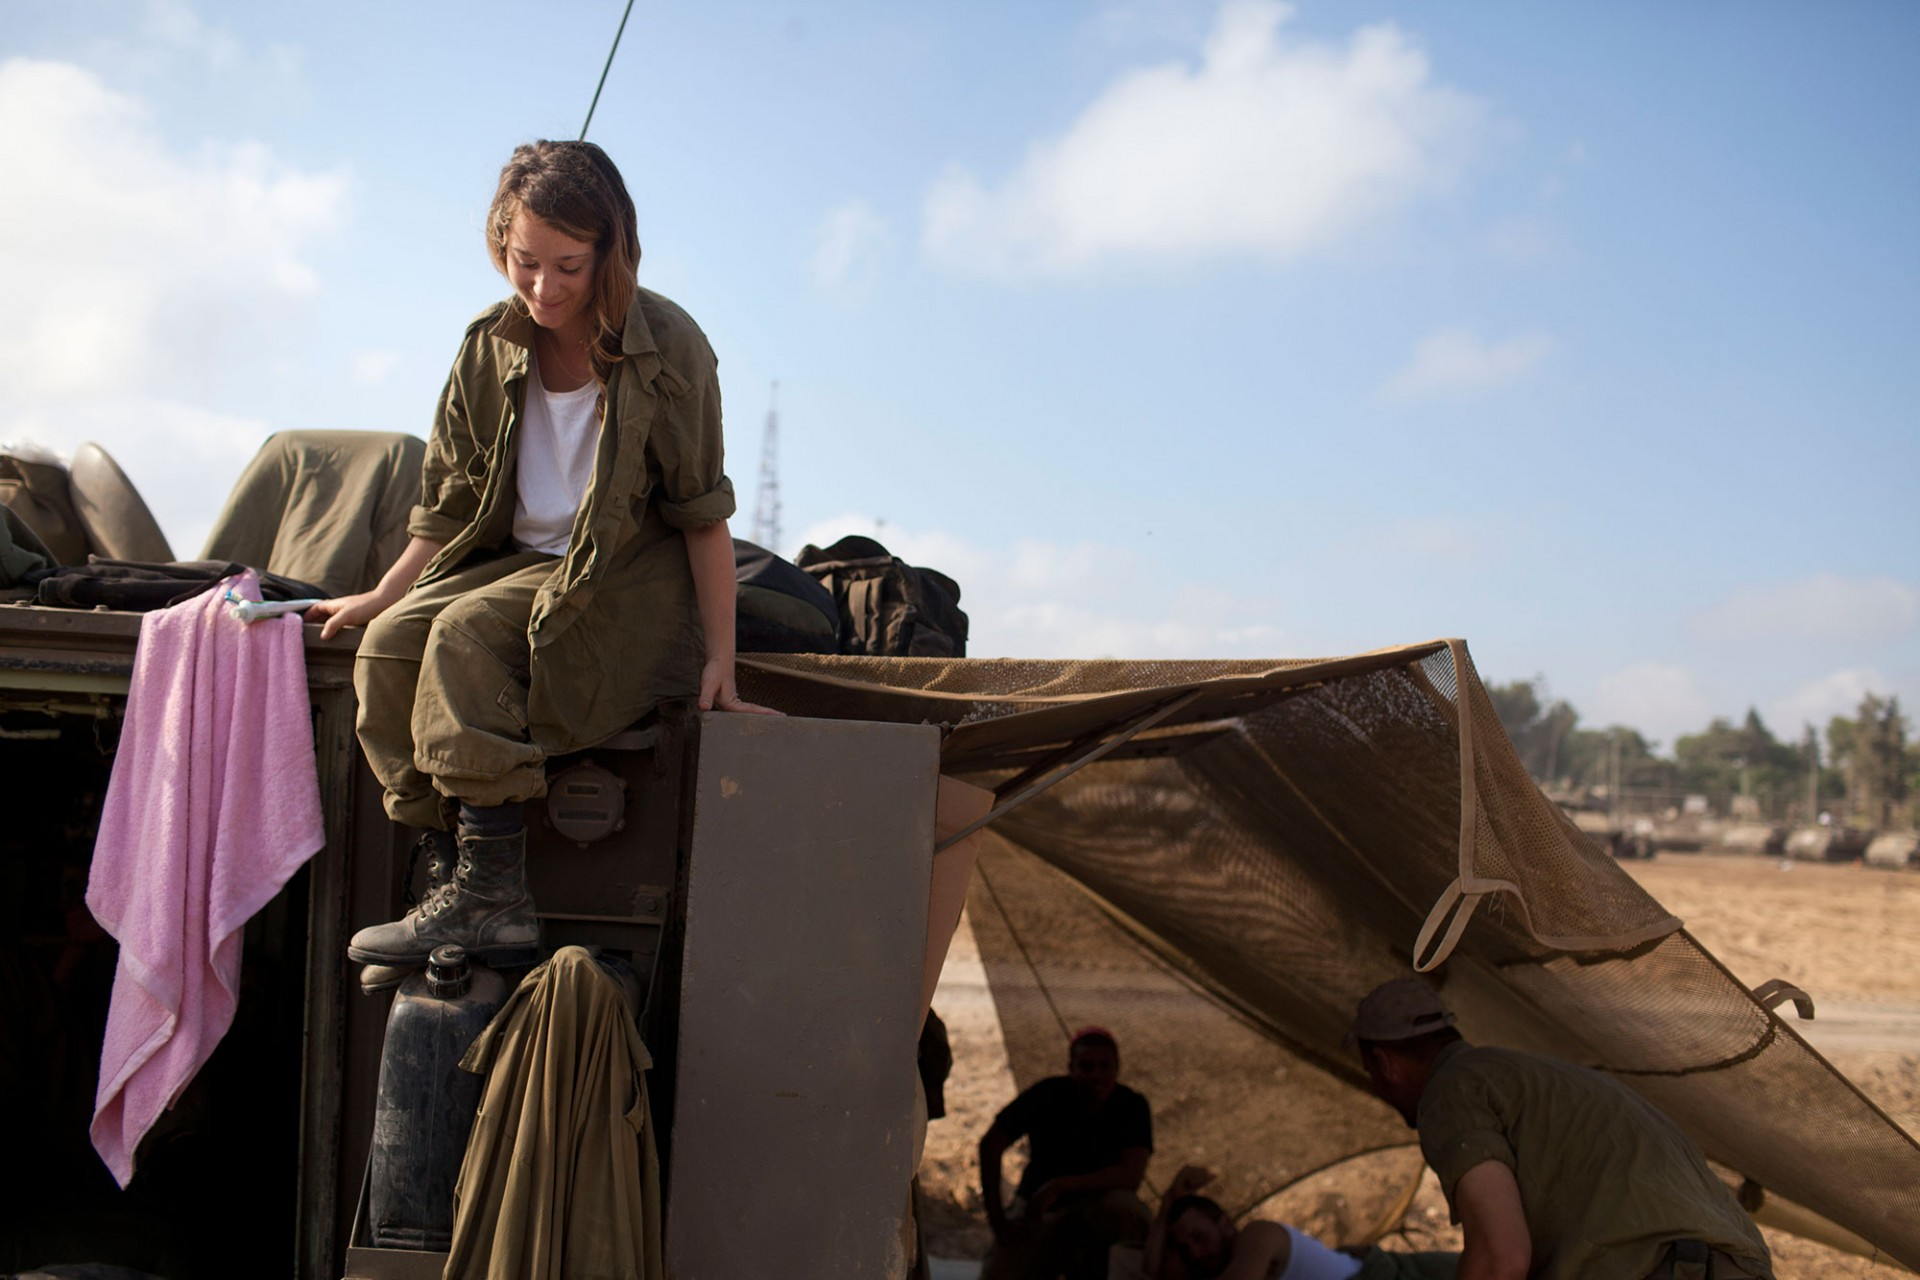 An Israeli woman soldier sits on an Army Armoured Personnel Carrier (APC) in a deployment area on July 24, 2014 on Israel's border with the Gaza Strip.